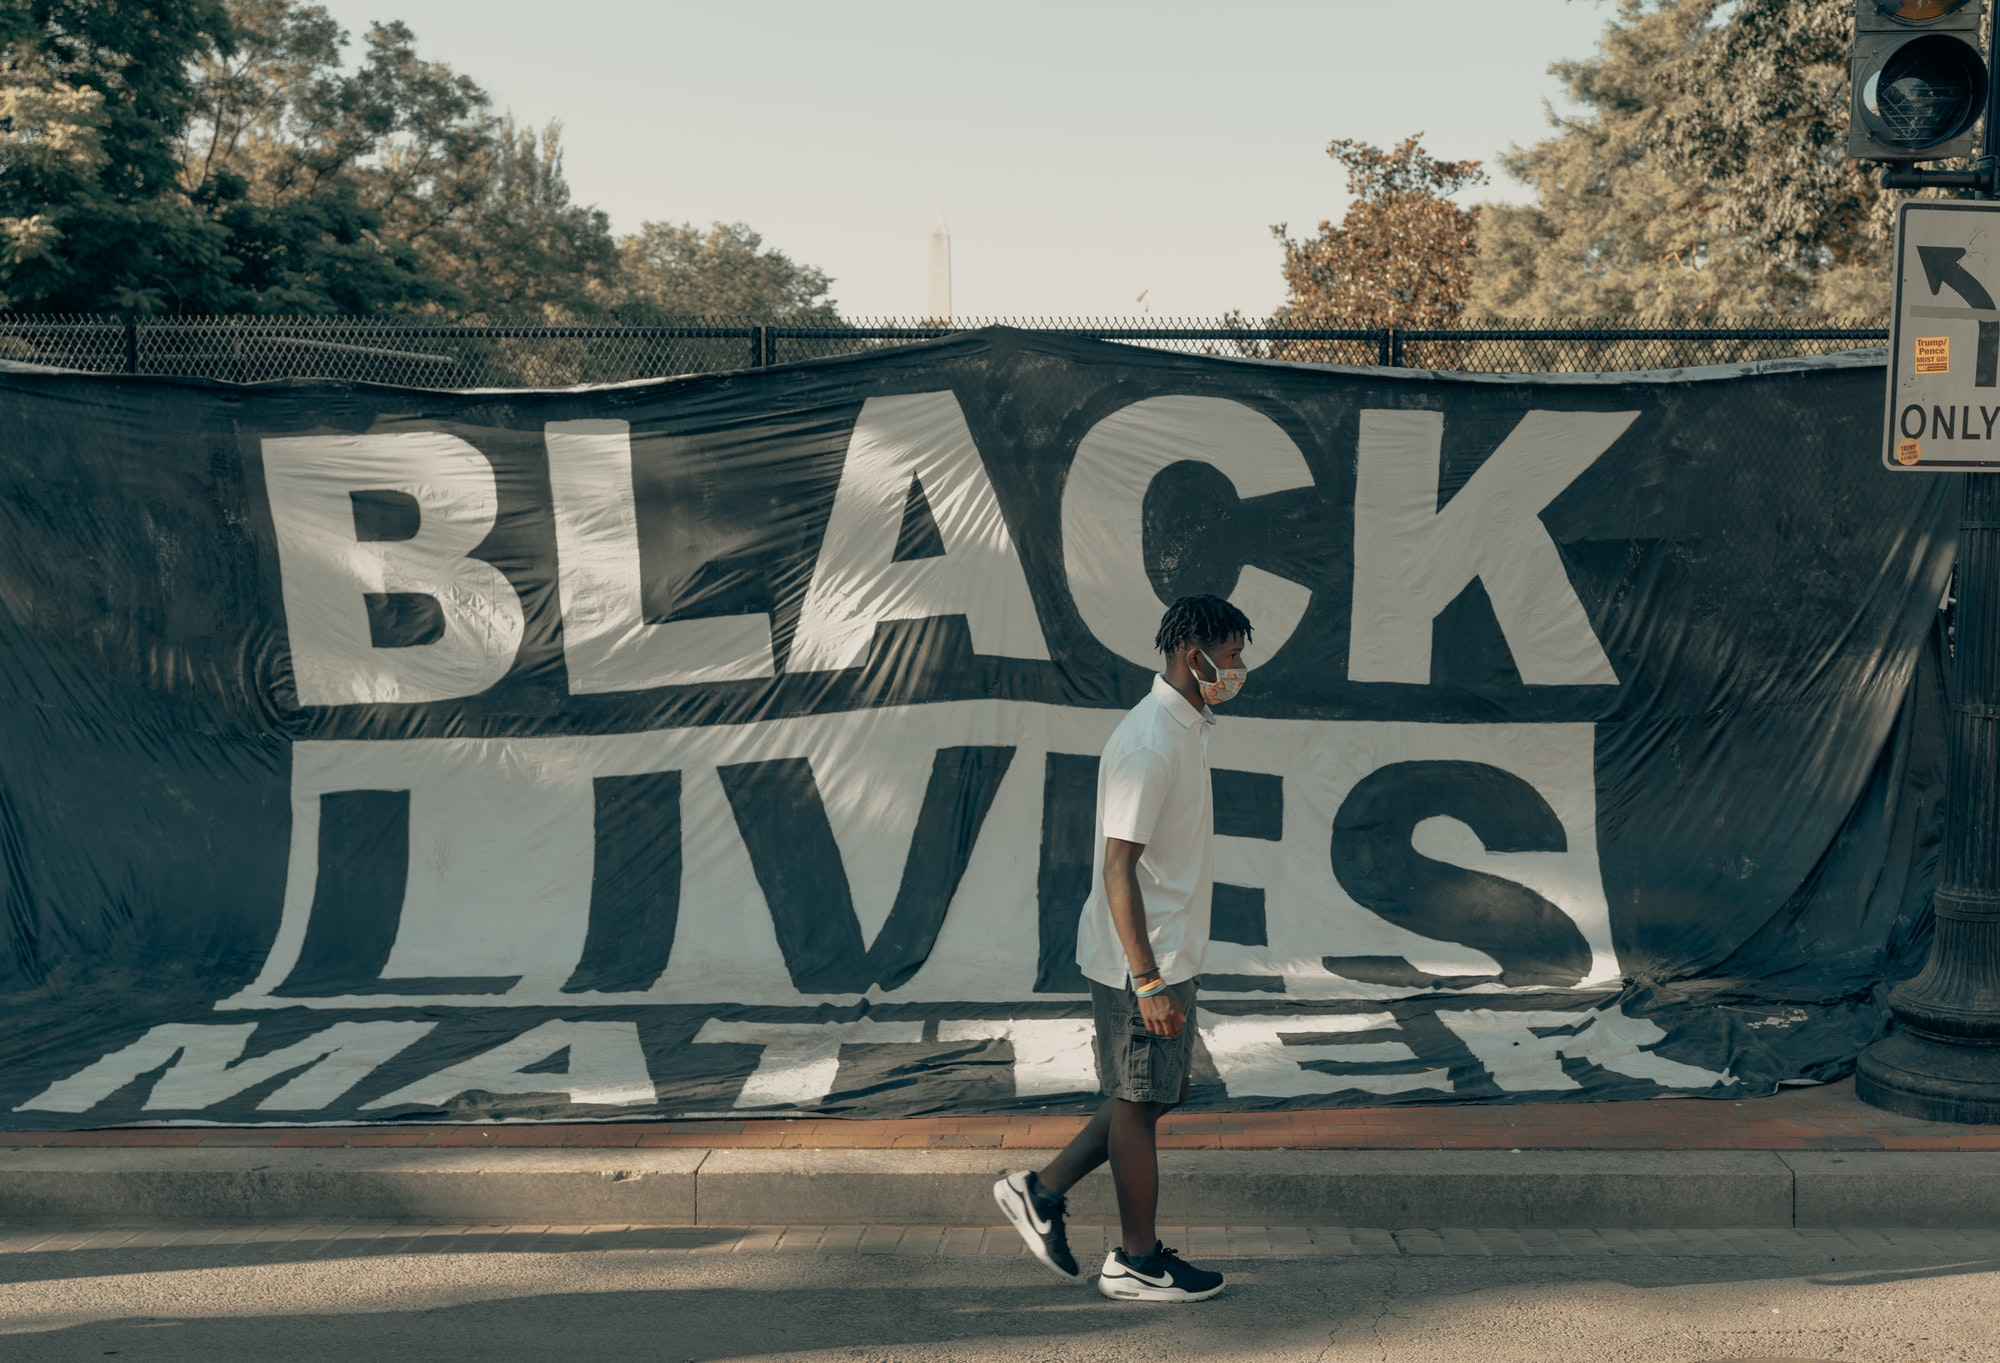 Man walks in front of a Black Lives Matter flag (IG: @clay.banks)